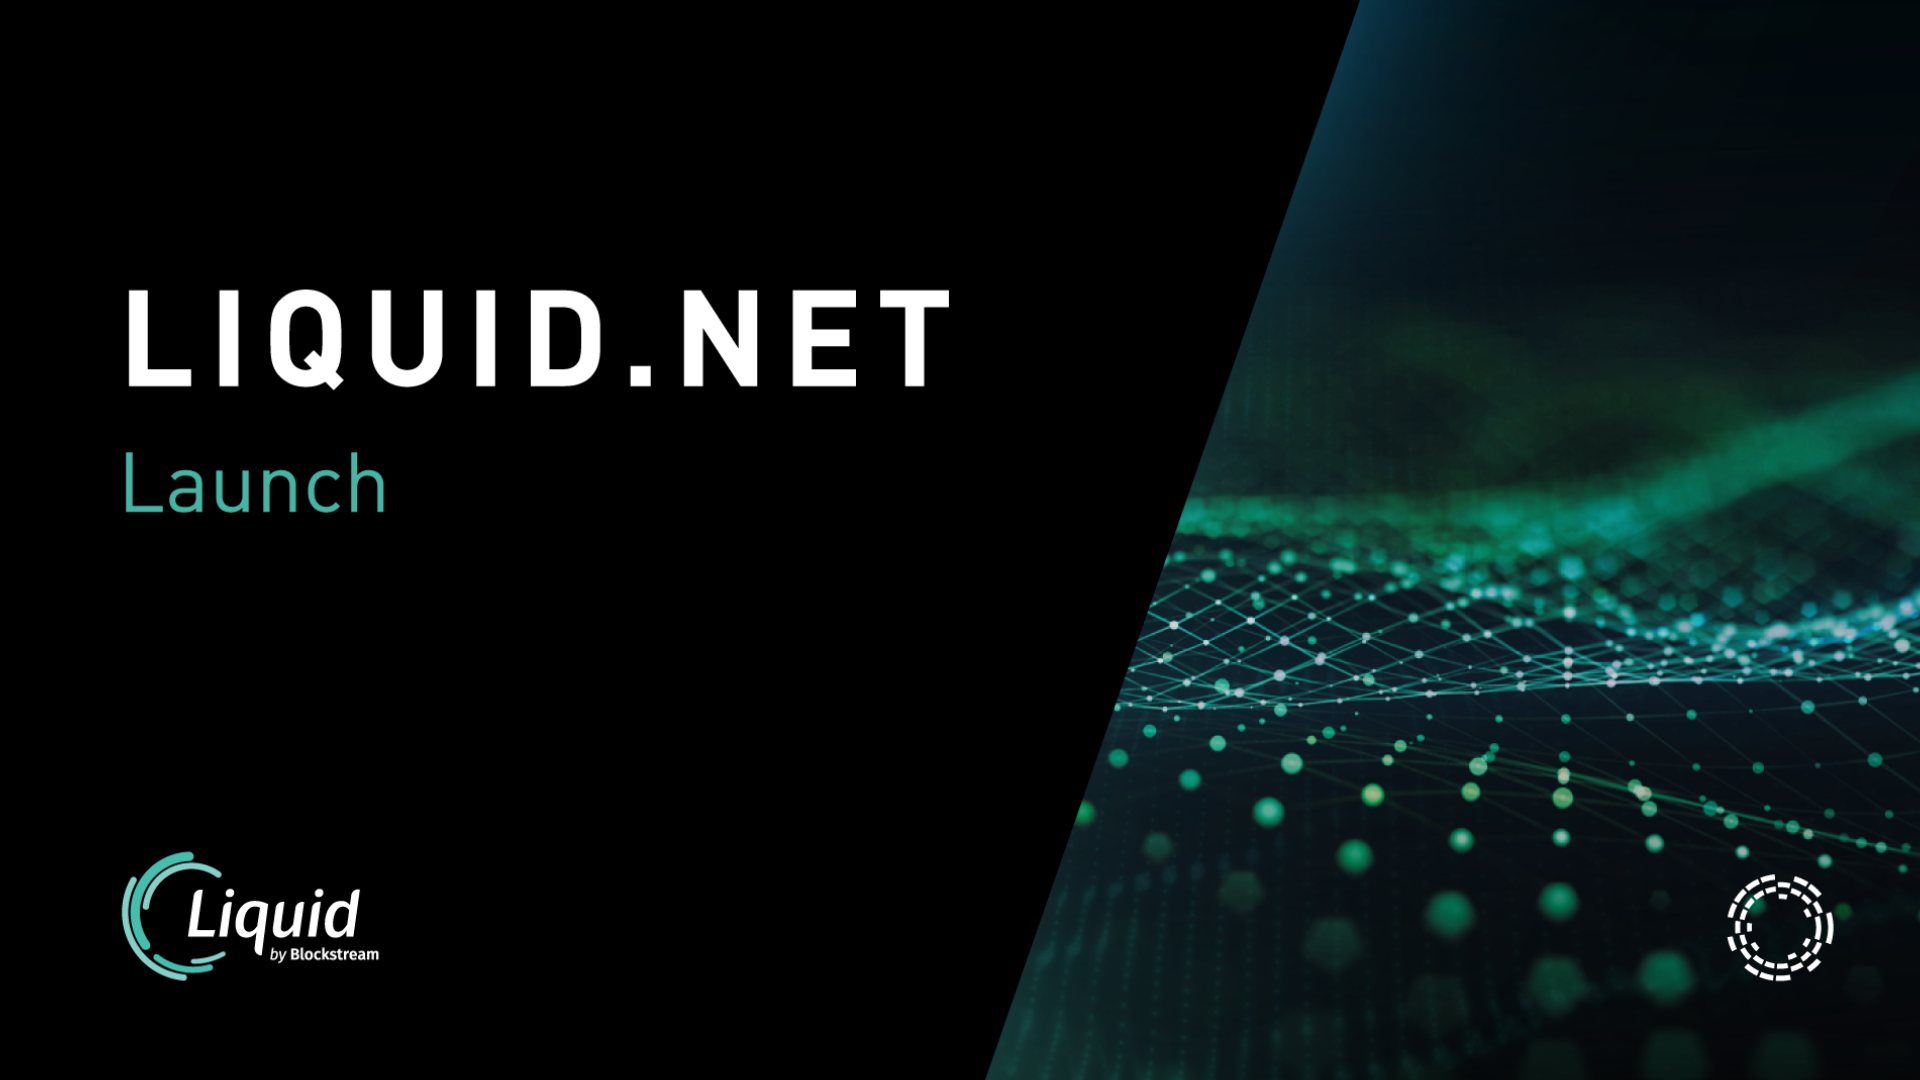 Liquid.net: Basecamp for the Liquid Network